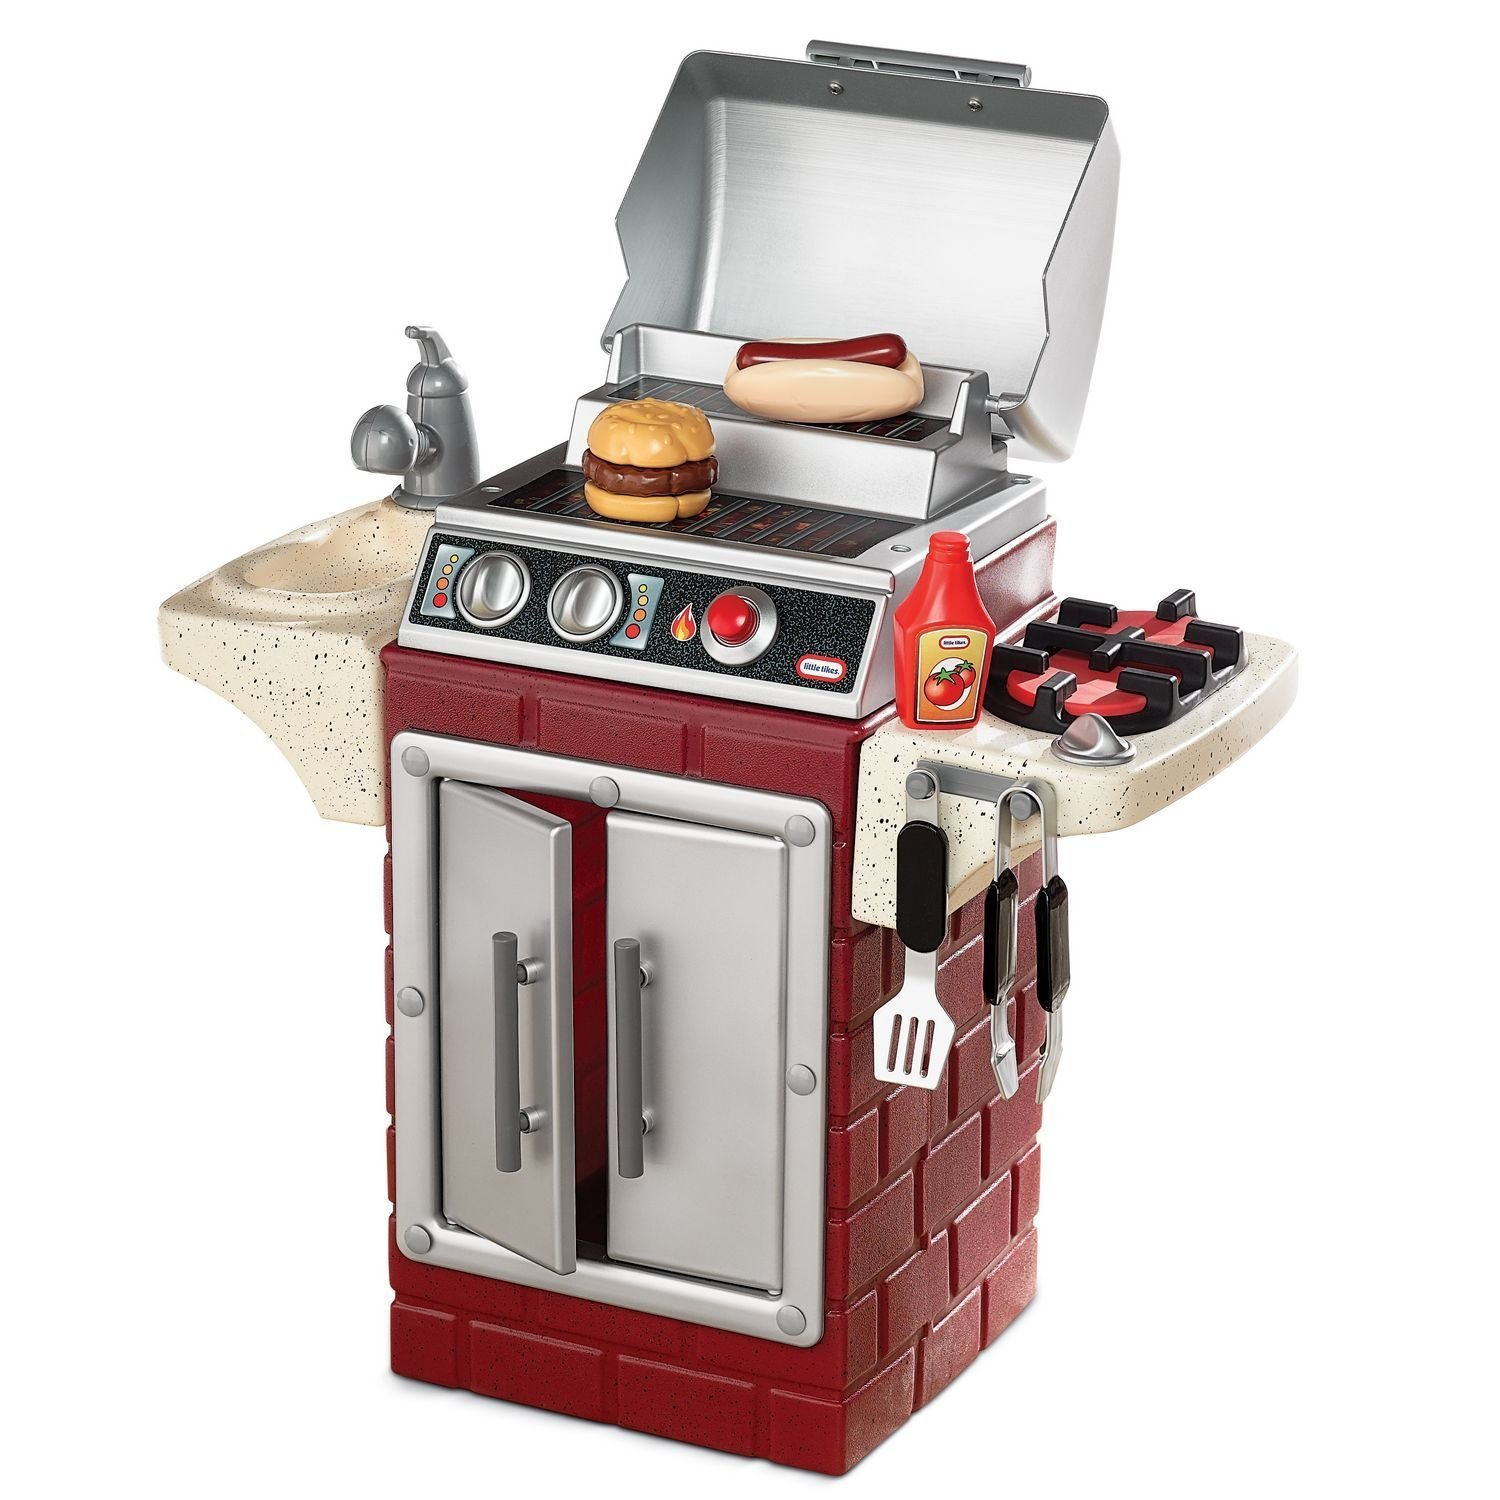 Total Fab: Kids\' Outdoor Play Kitchens and Toy Grills